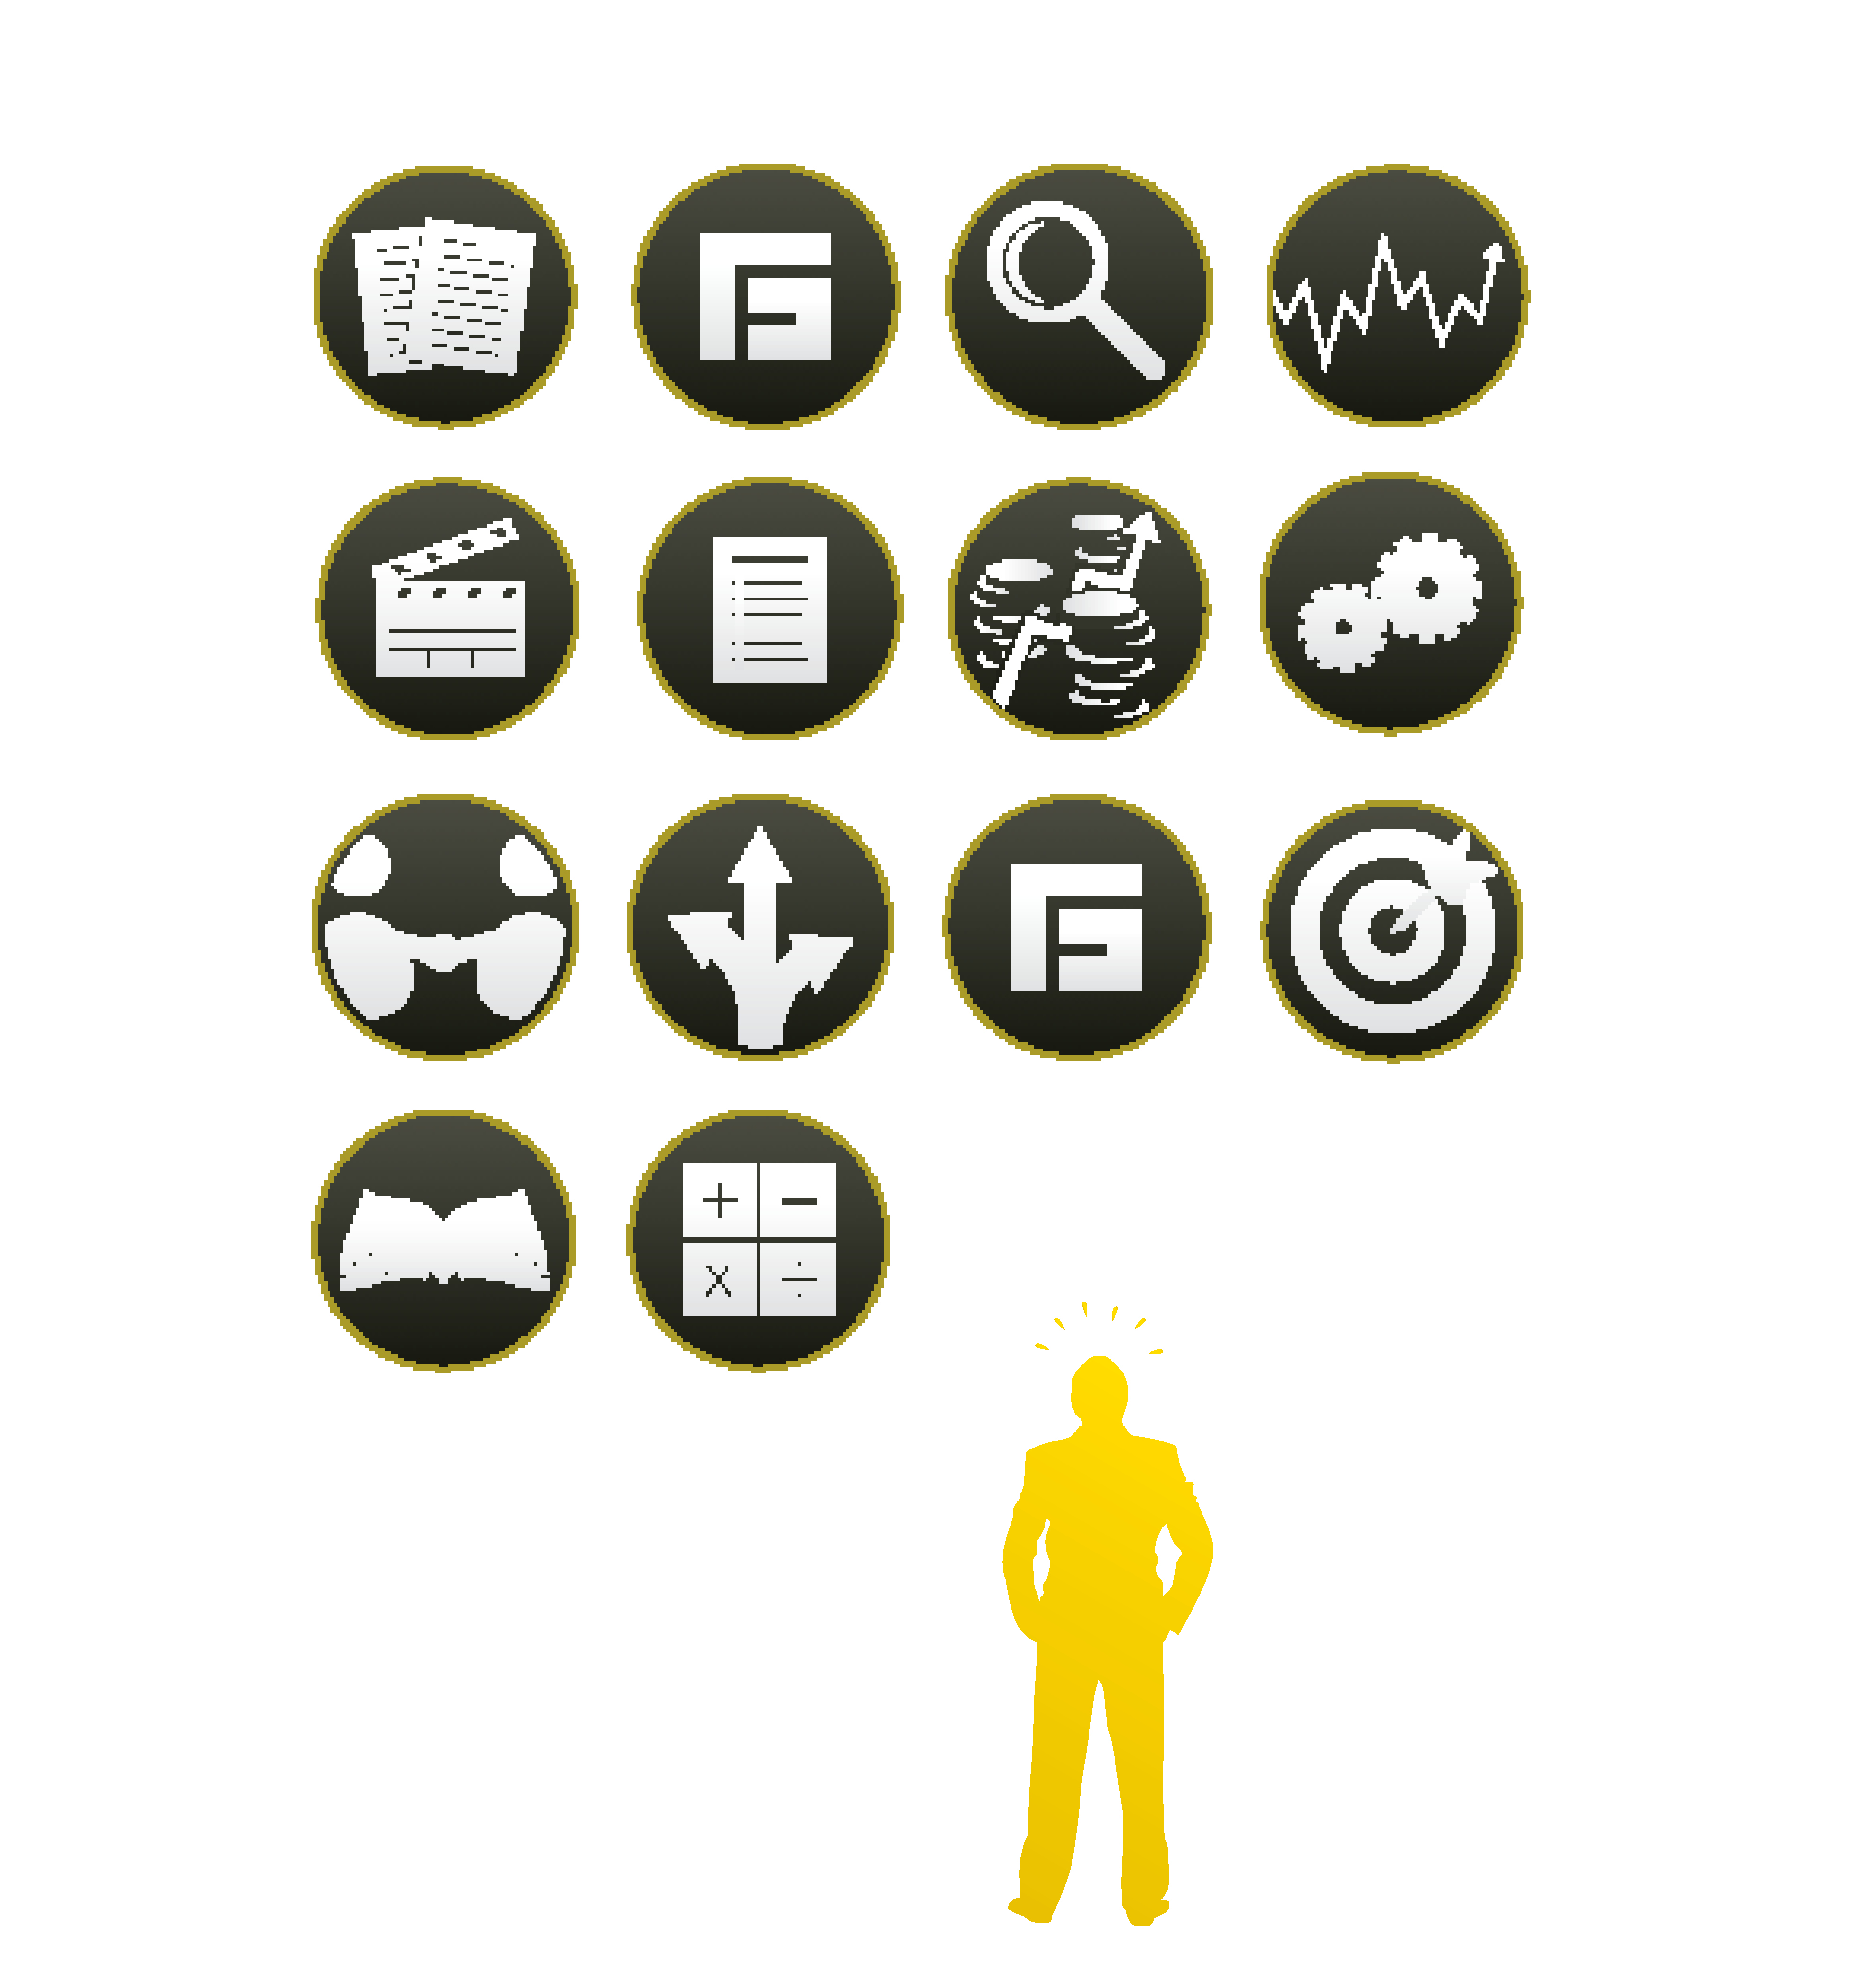 Iconography used in presentations